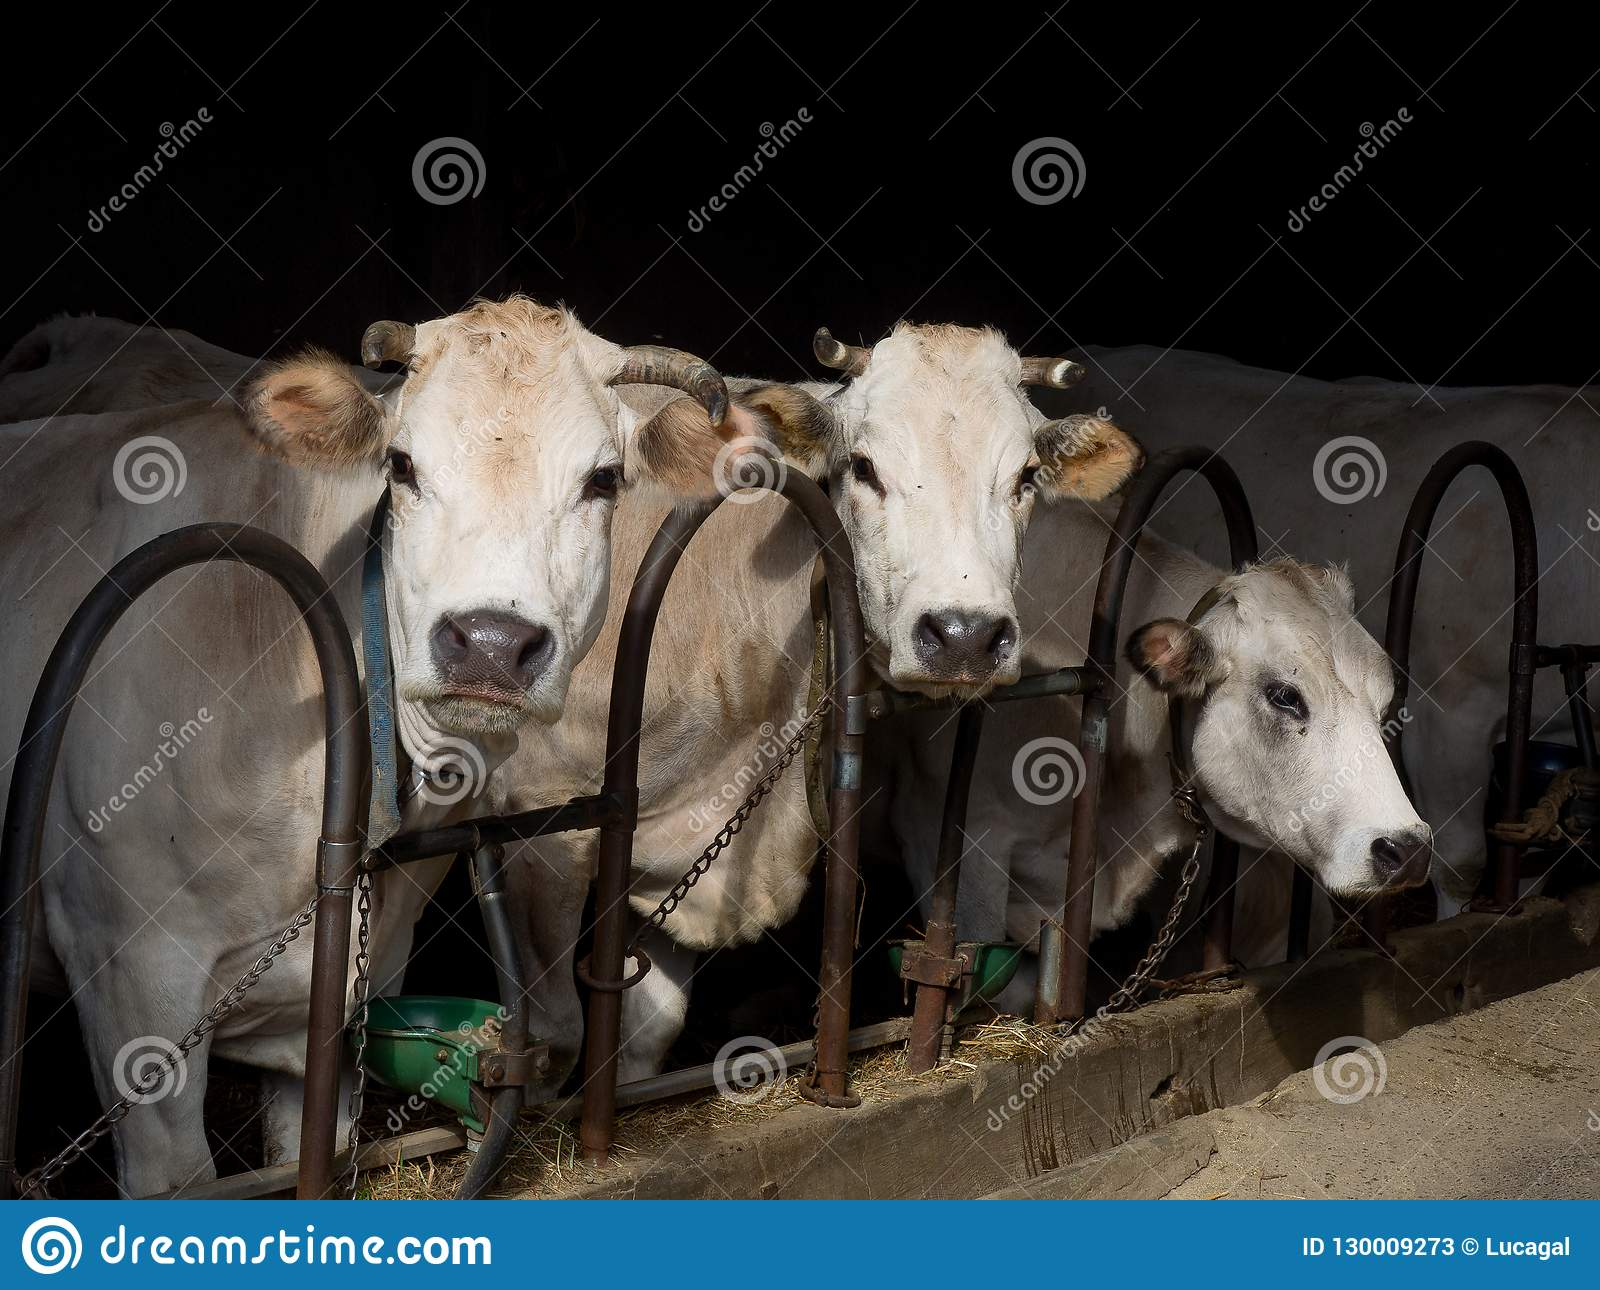 Portrait of three white dairy cows in a stable